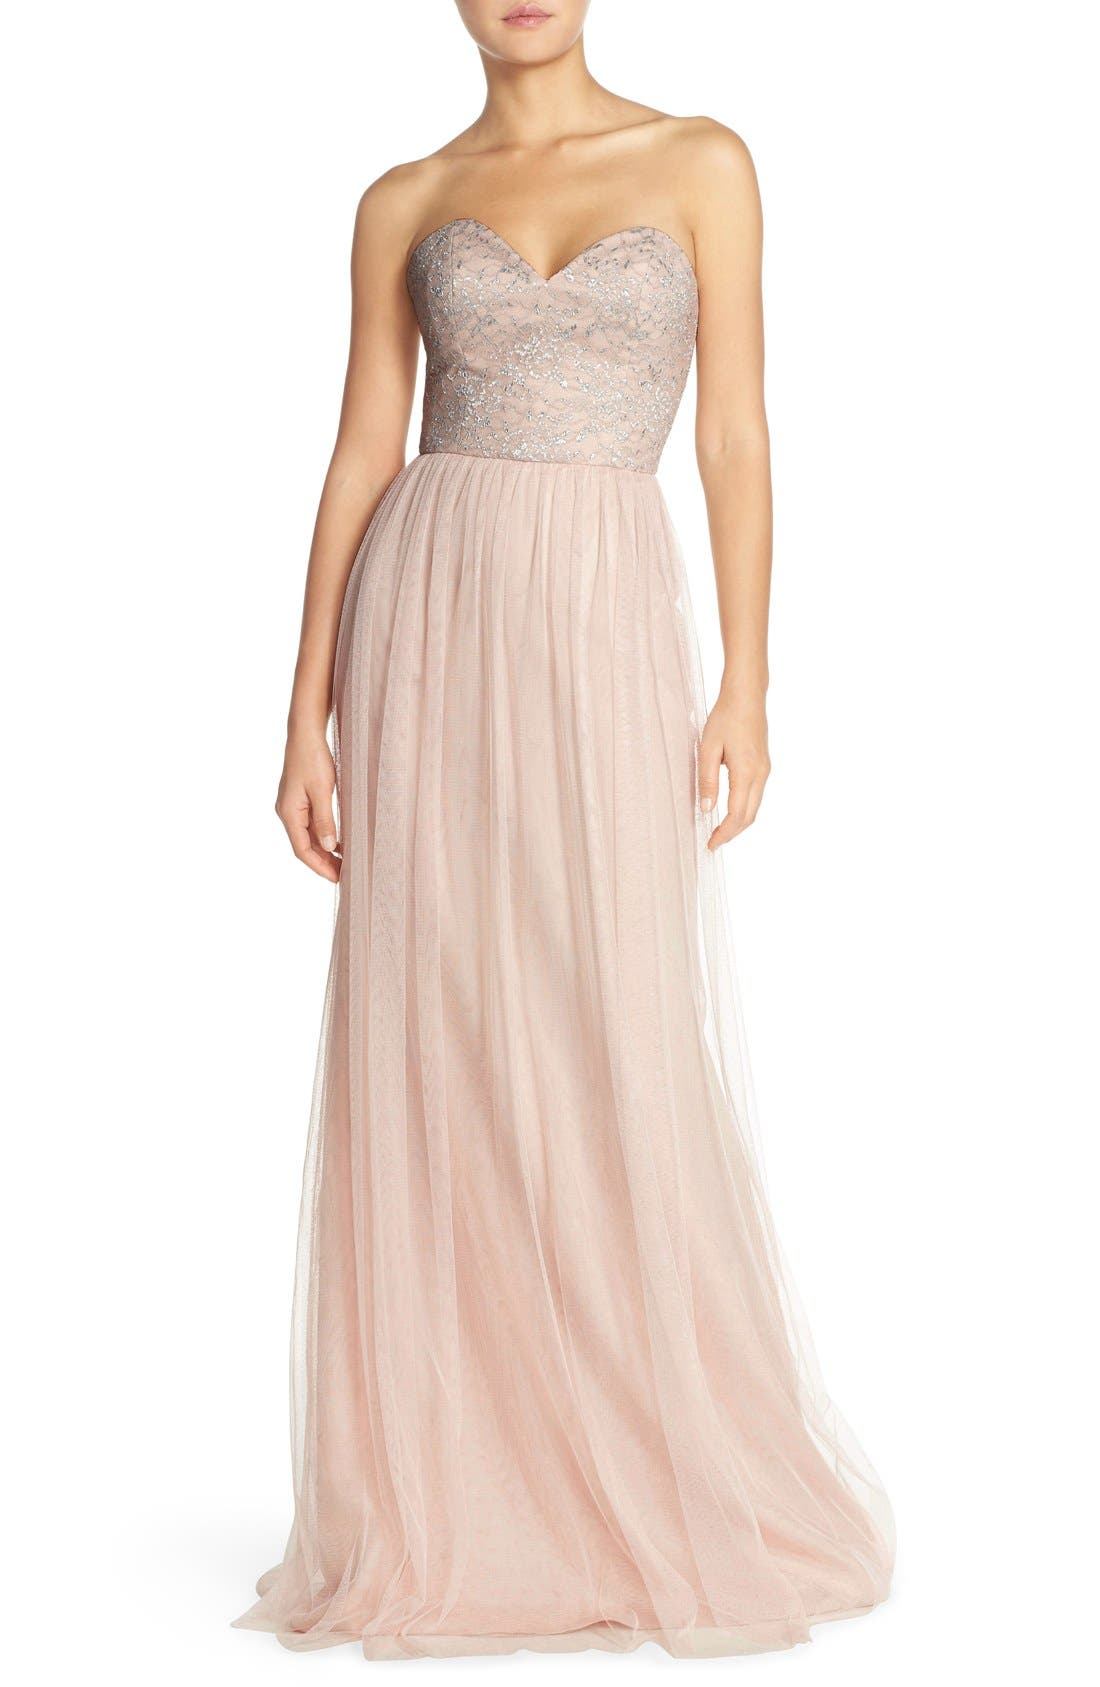 Main Image - Hayley Paige Occasions Strapless Metallic Lace & Net Gown